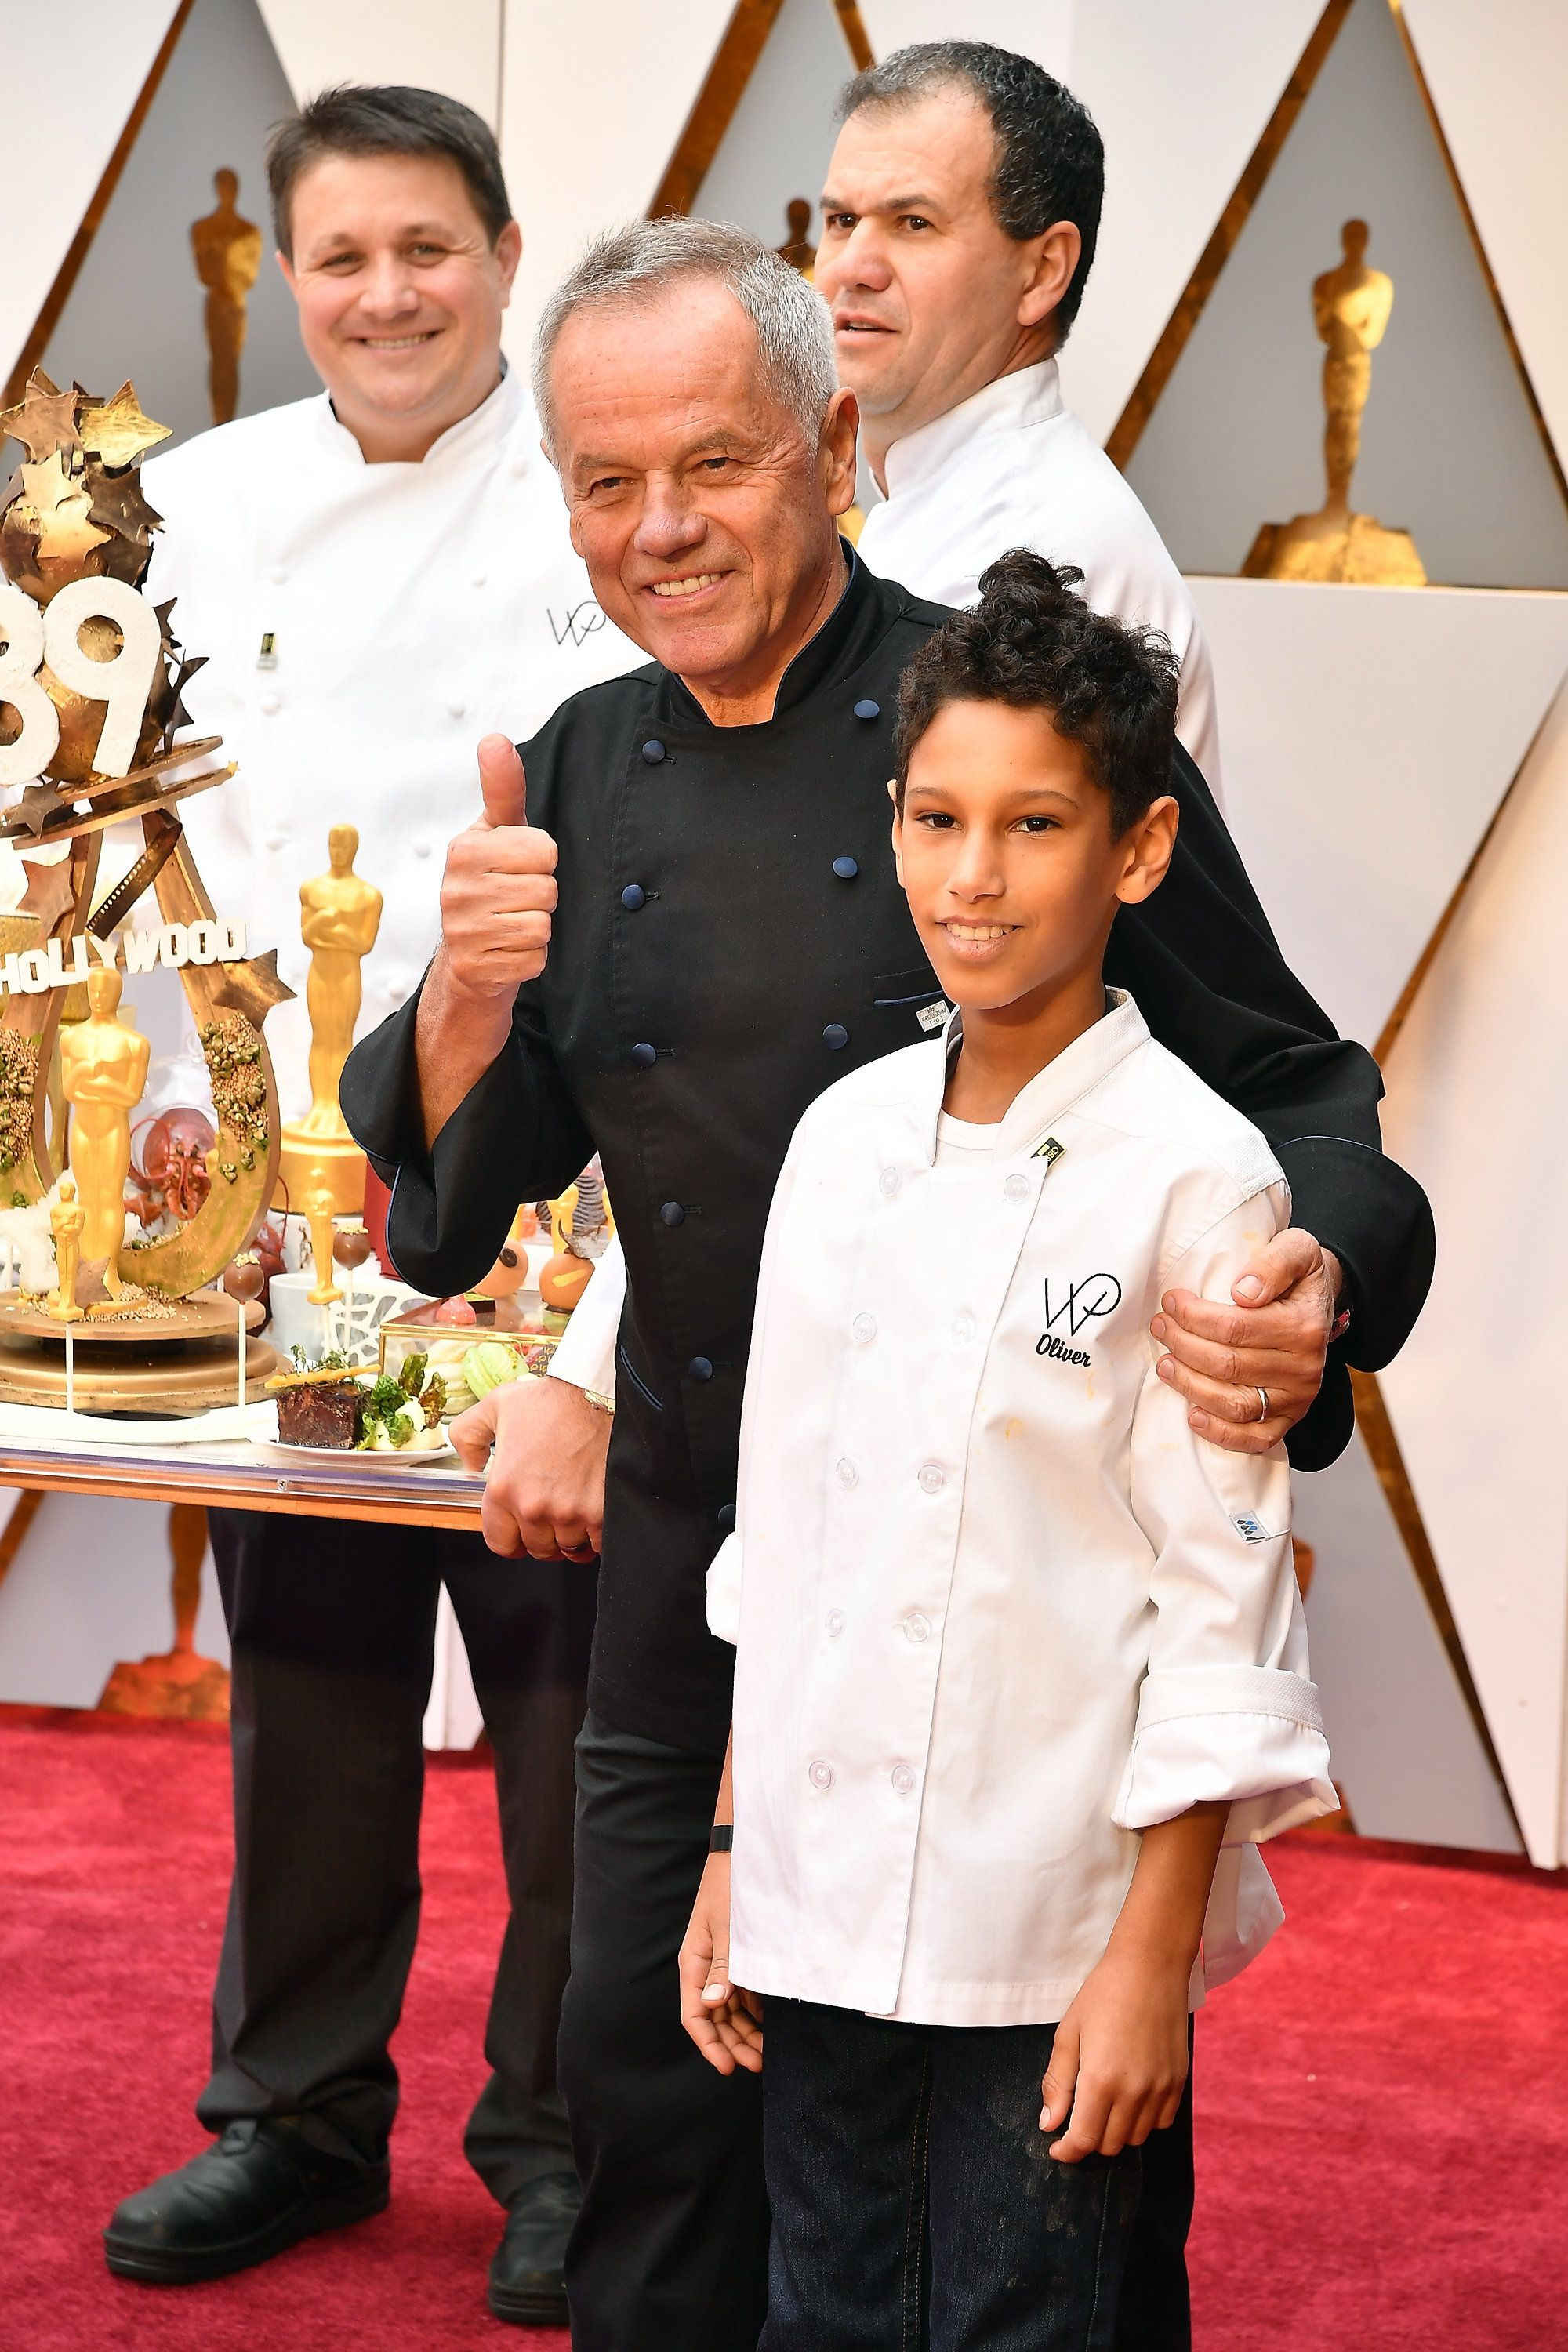 HOLLYWOOD, CA - FEBRUARY 26: Chef Wolfgang Puck (center) presents Oscar cuisine before the 89th Annual Academy Awards at Hollywood & Highland Center on February 26, 2017 in Hollywood, California.  (Photo by Jeff Kravitz/FilmMagic)